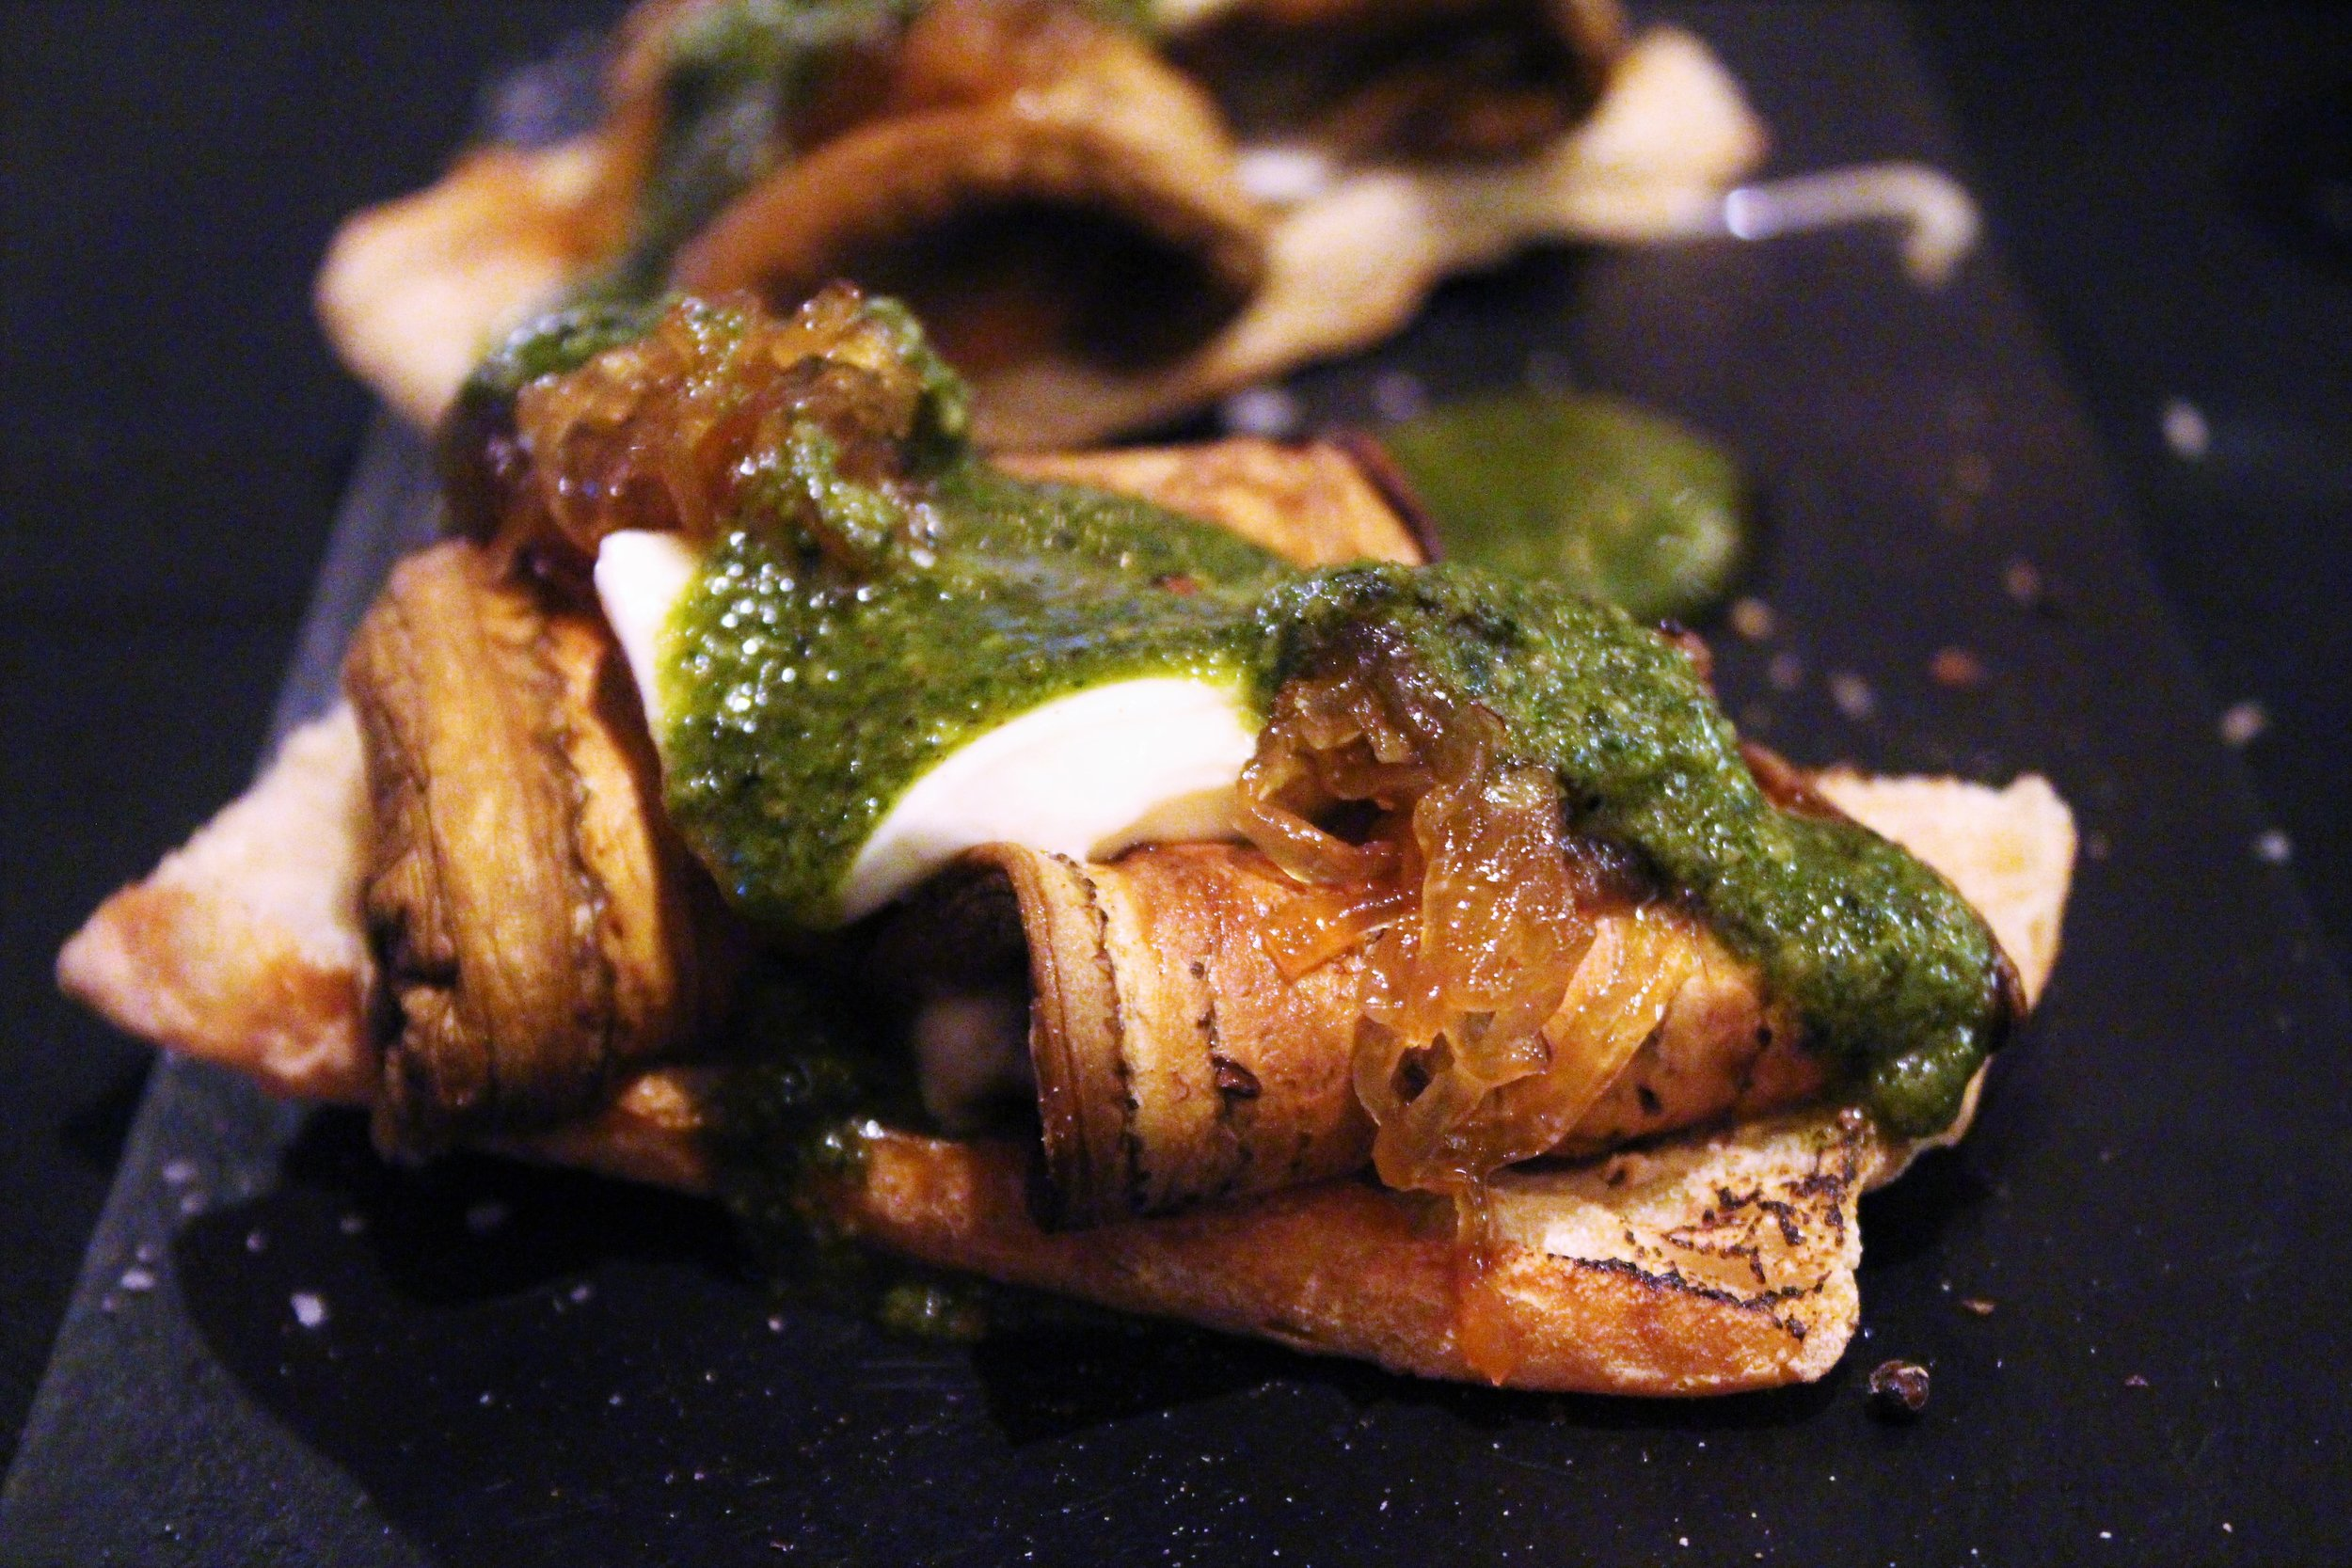 Grilled Aubergine, Mozzarella, and Caramelized Onions with Basil Vinaigrette Torrada at Eldiset in Barcelona